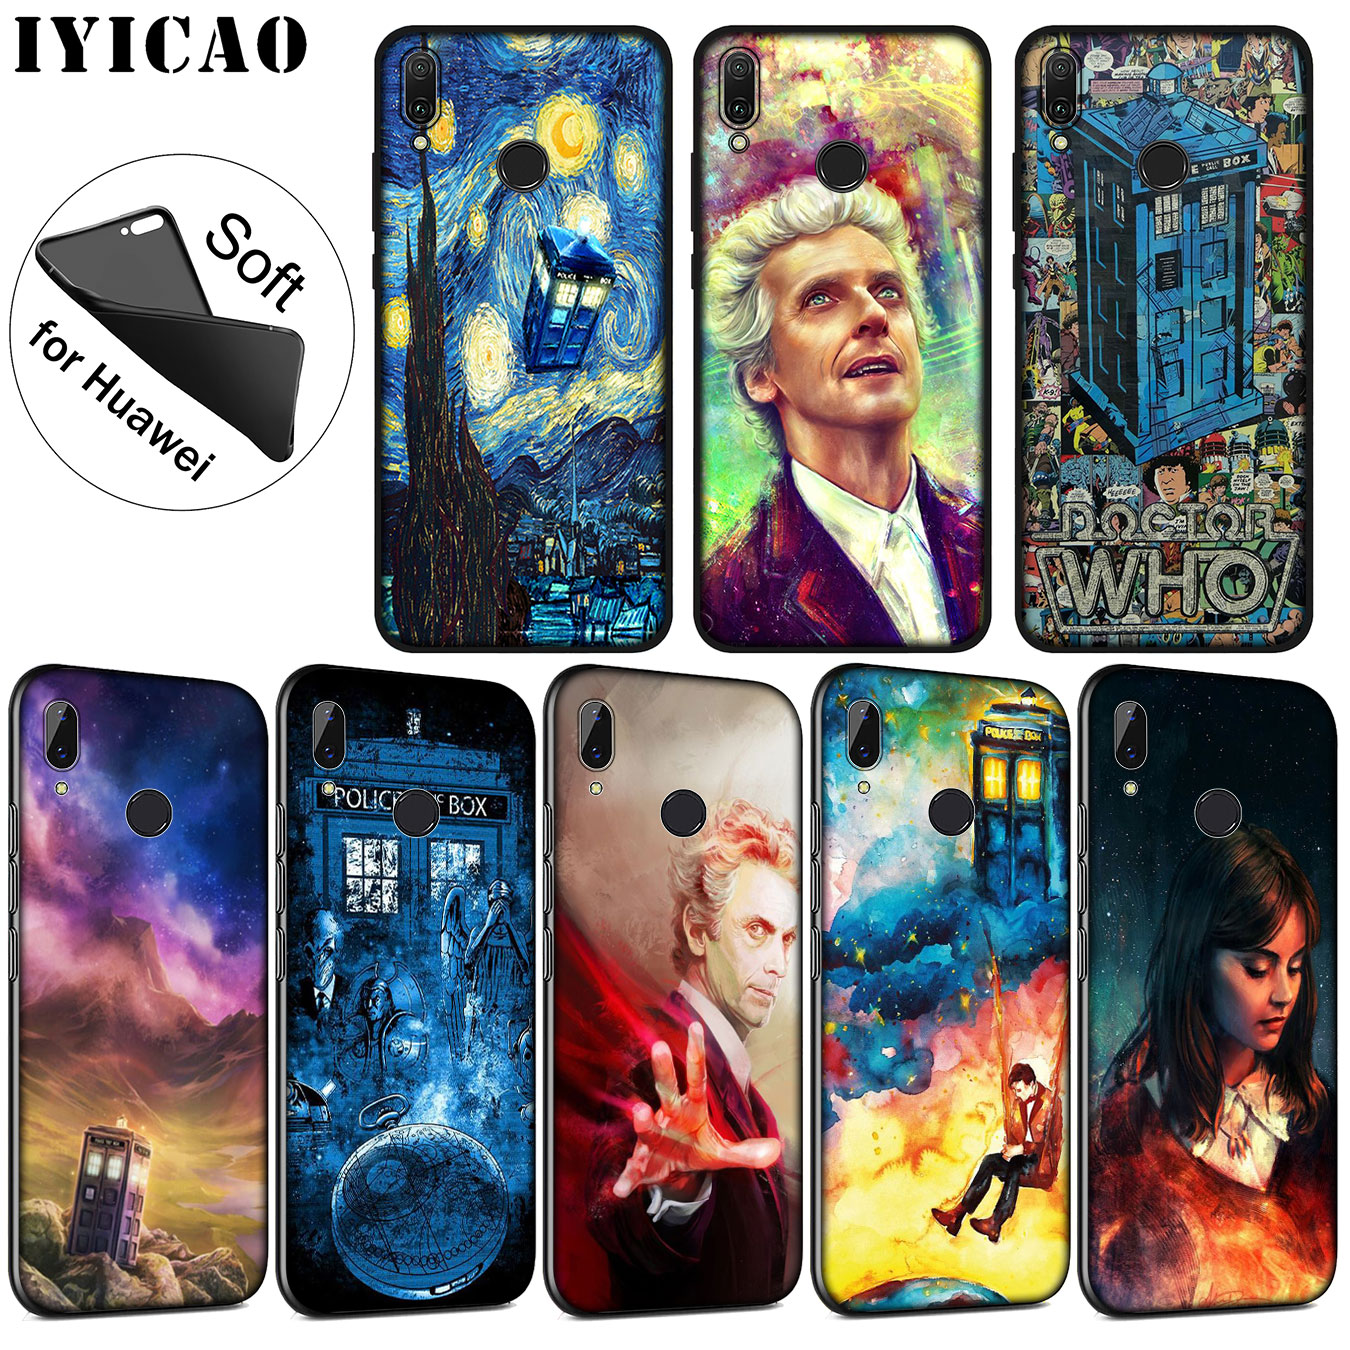 Iyicao Tardis Box Doctor Who Soft Silicone Phone Case For Huawei P20 Pro P10 P9 P8 Lite Mini 2017 2015 P Smart 2019 Black Cover Good For Energy And The Spleen Fitted Cases Cellphones & Telecommunications